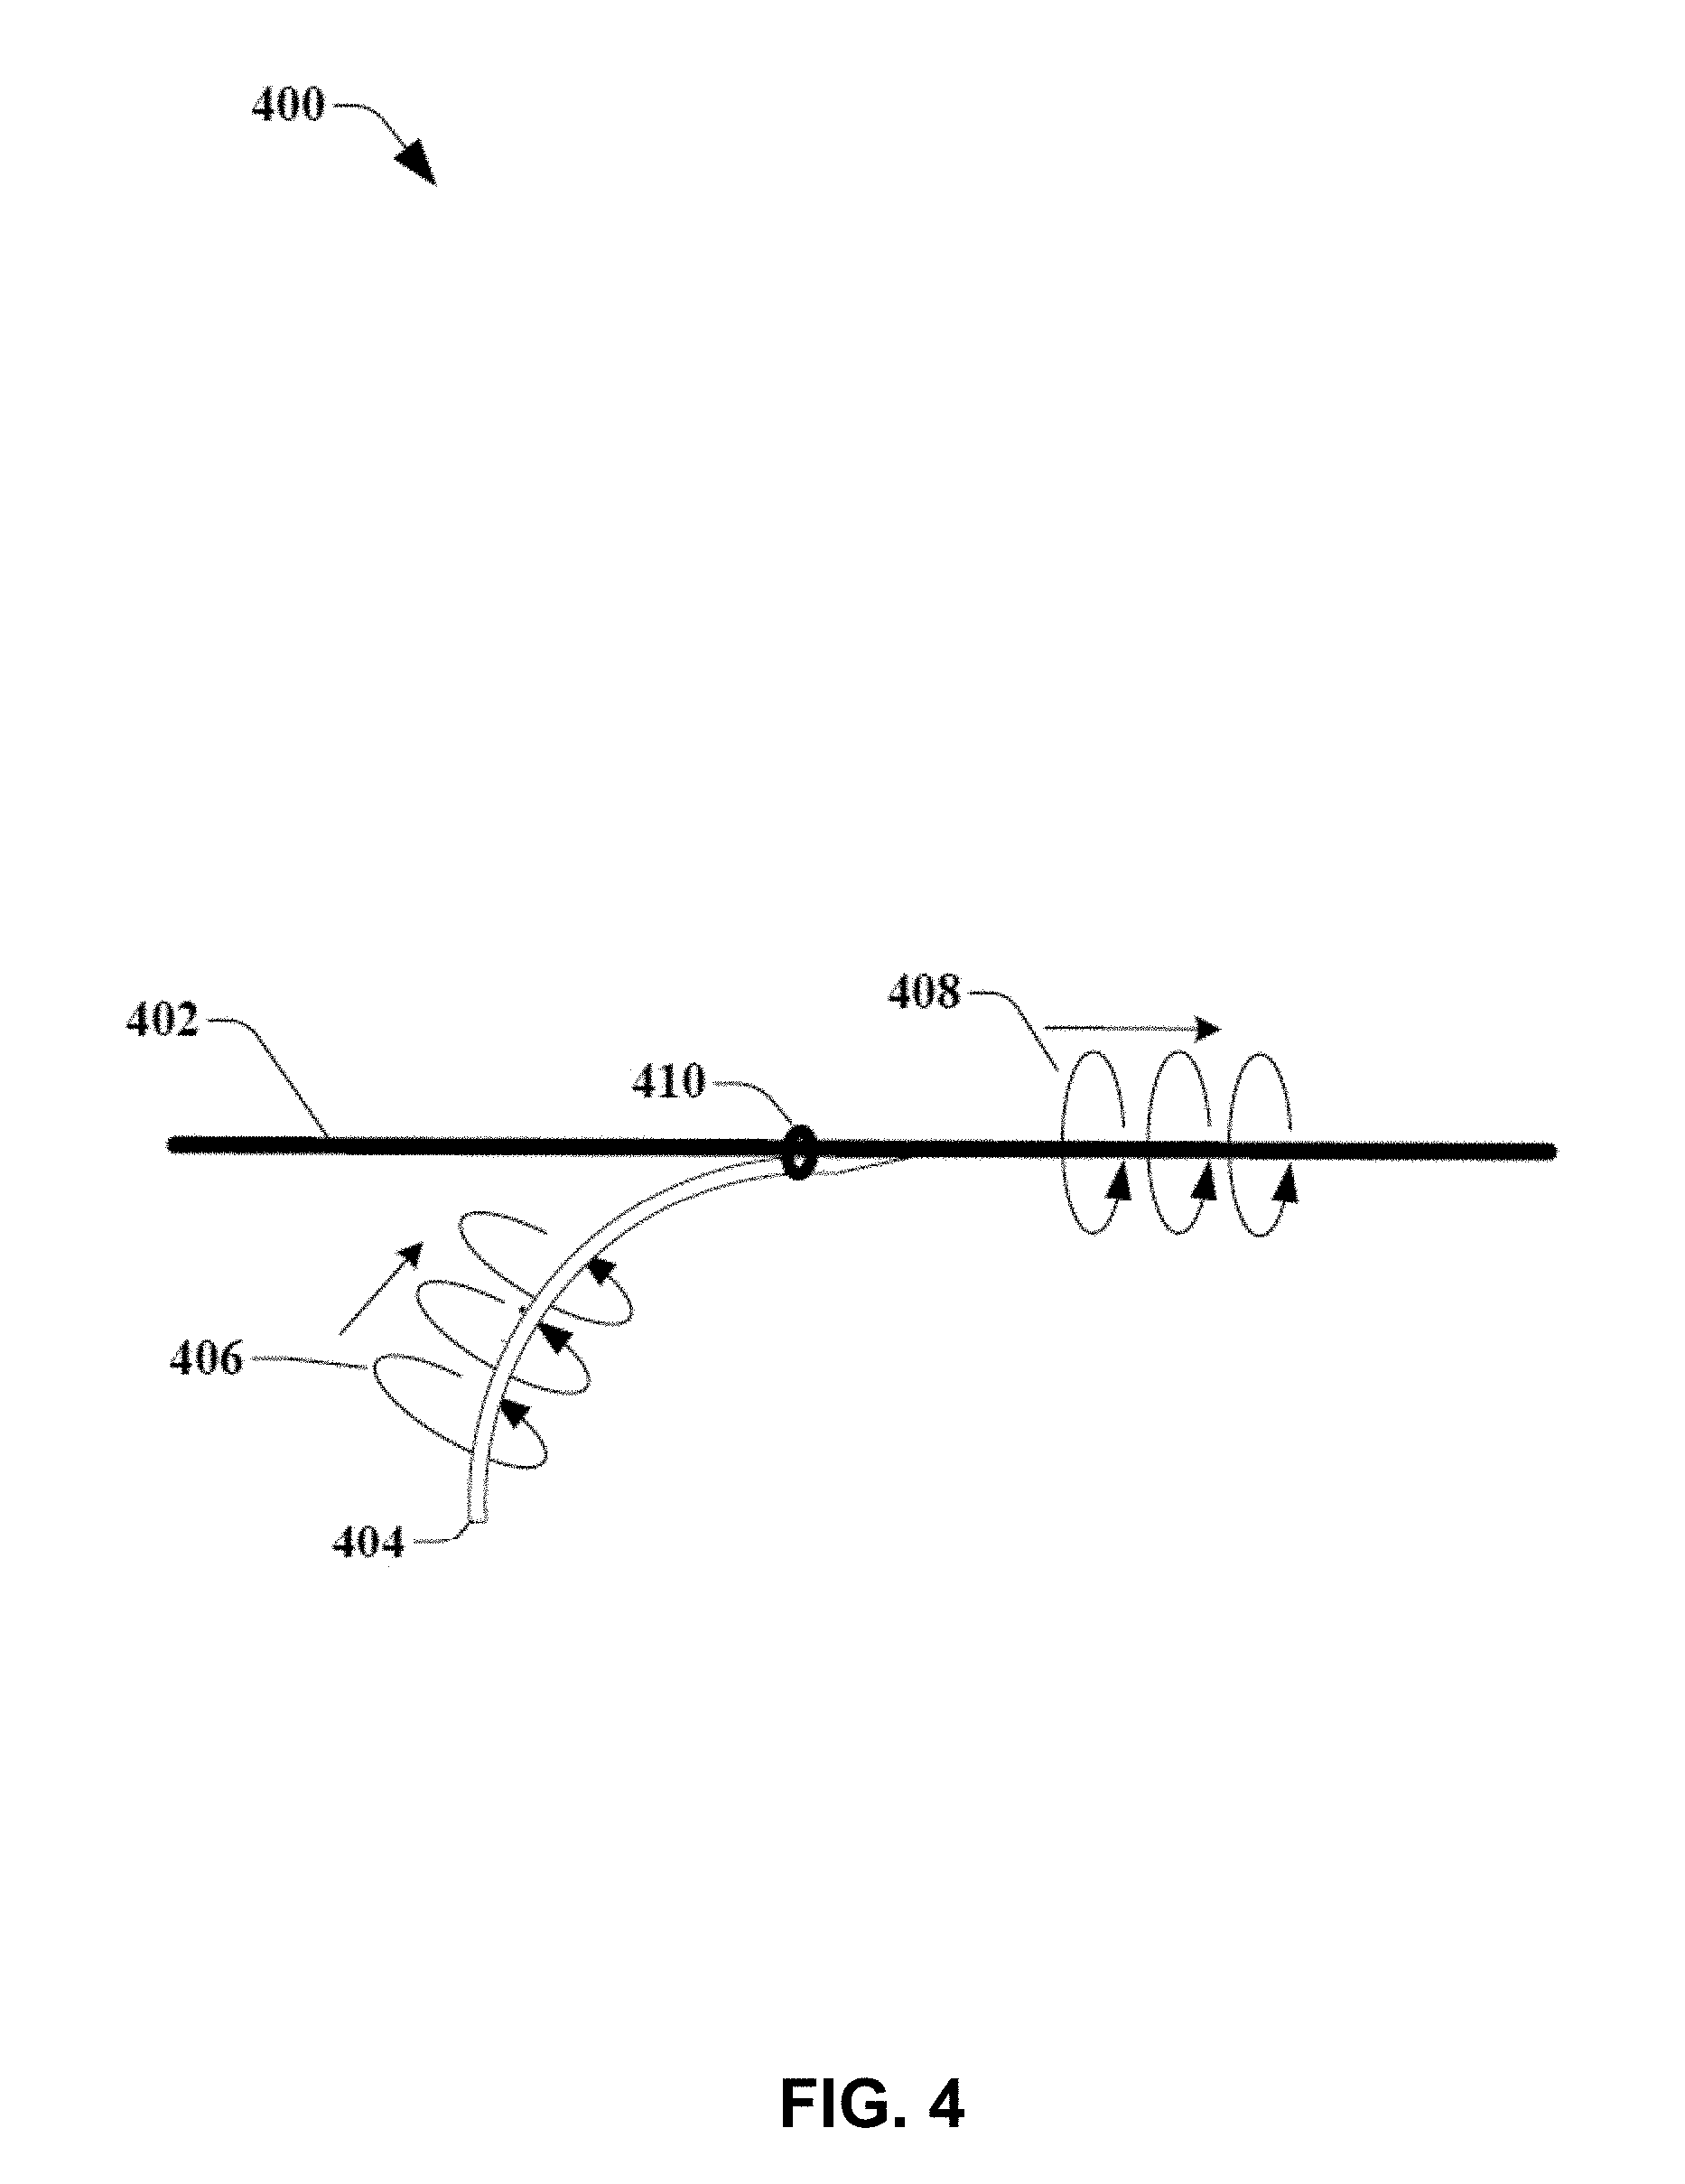 us9768833b2 method and apparatus for sensing a condition in a Y Transformer Diagram us9768833b2 method and apparatus for sensing a condition in a transmission medium of electromagnetic waves patents